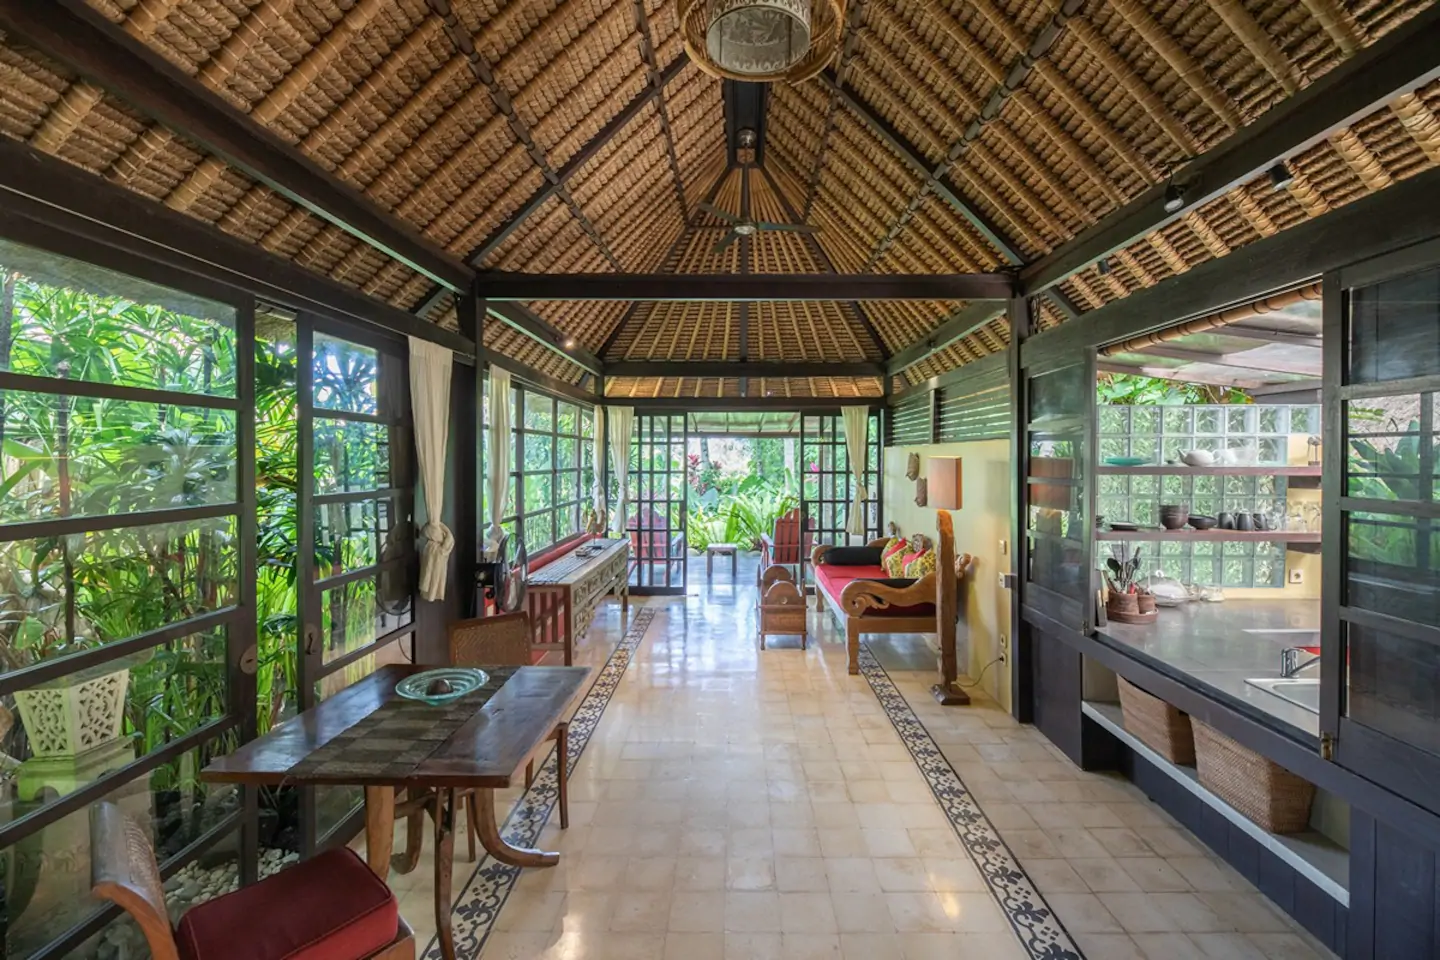 Living area to the garden and rice field